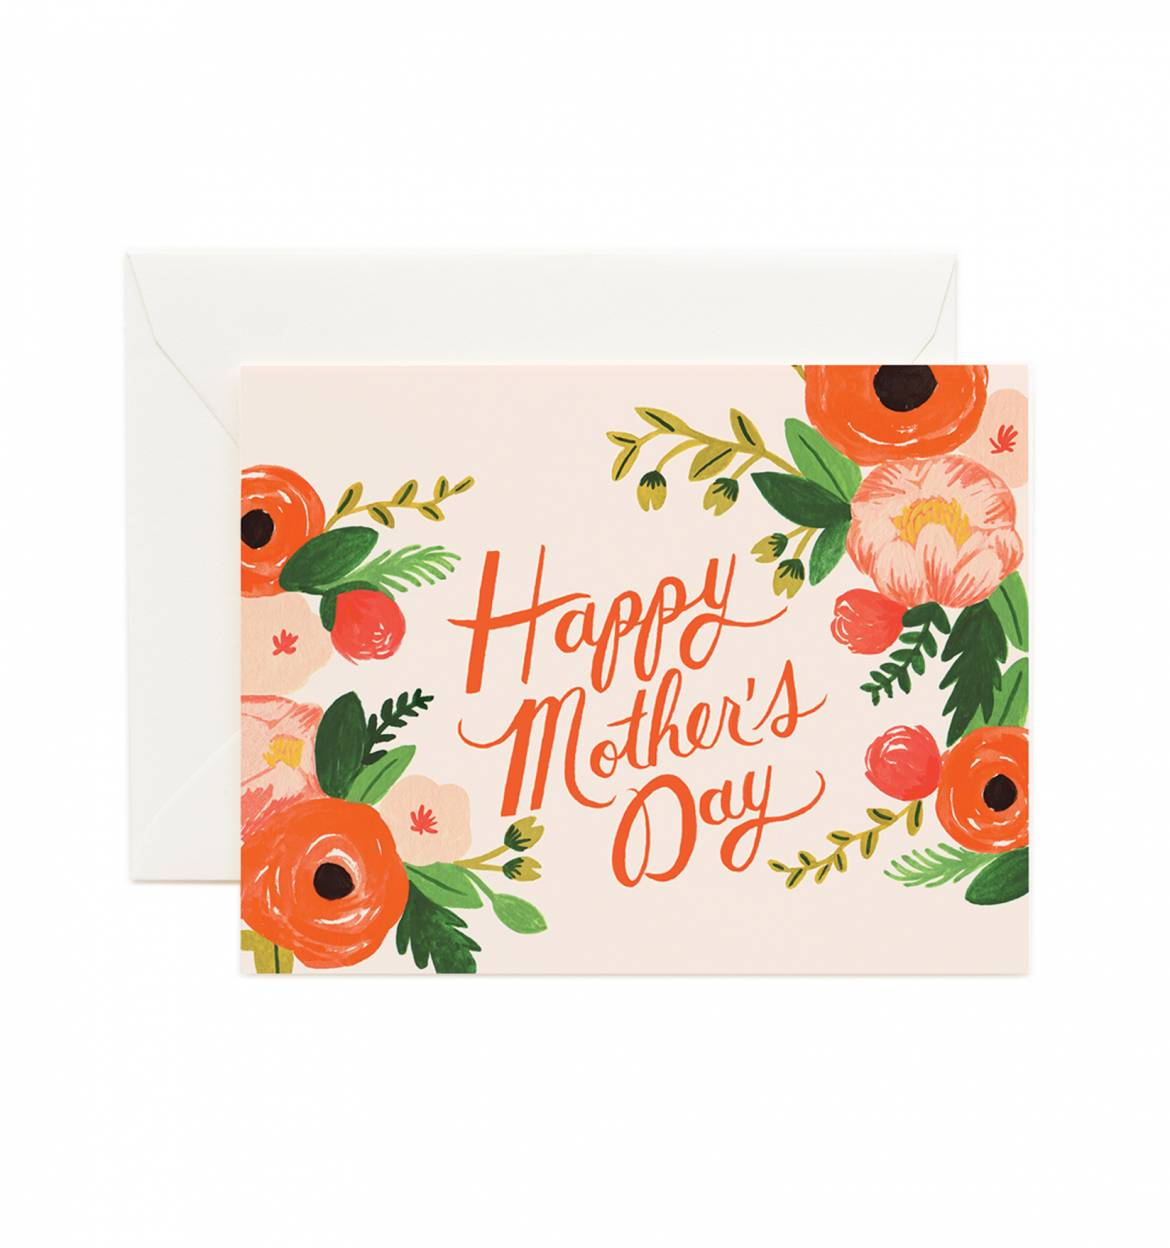 mother 39 s day greeting cards 2018 special printable greeting cards for mothers. Black Bedroom Furniture Sets. Home Design Ideas